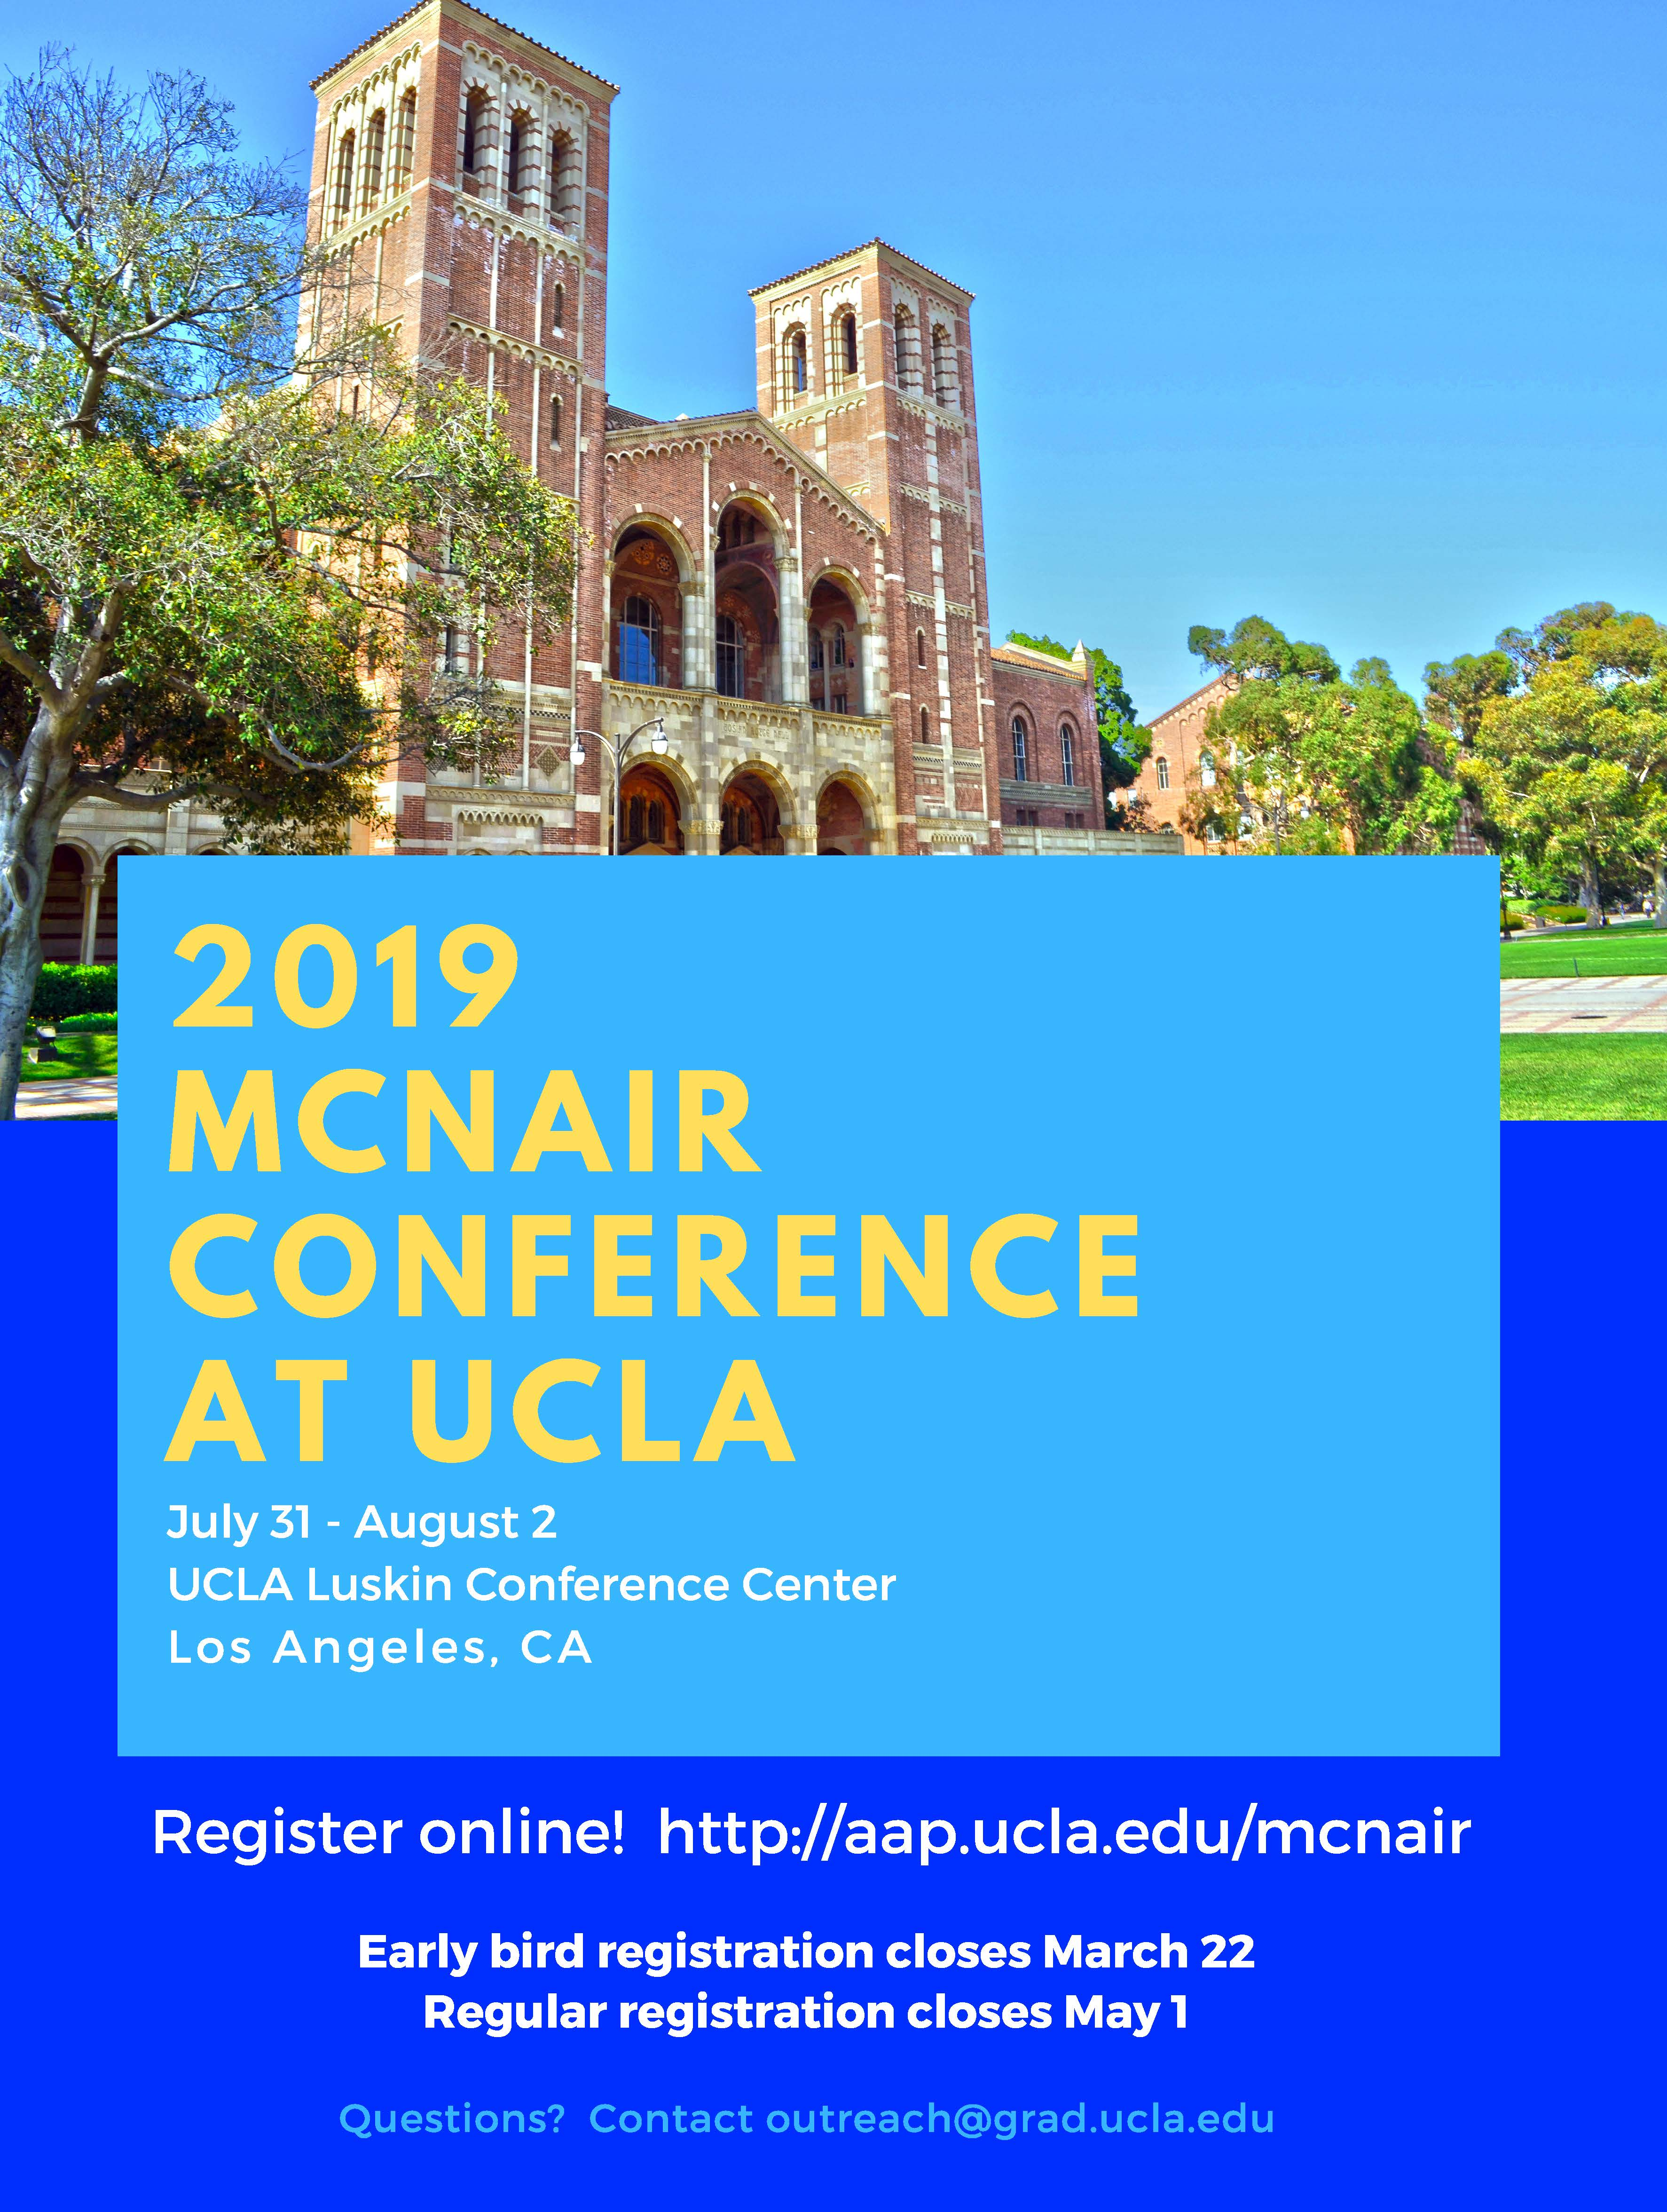 2019 UCLA McNair Conference